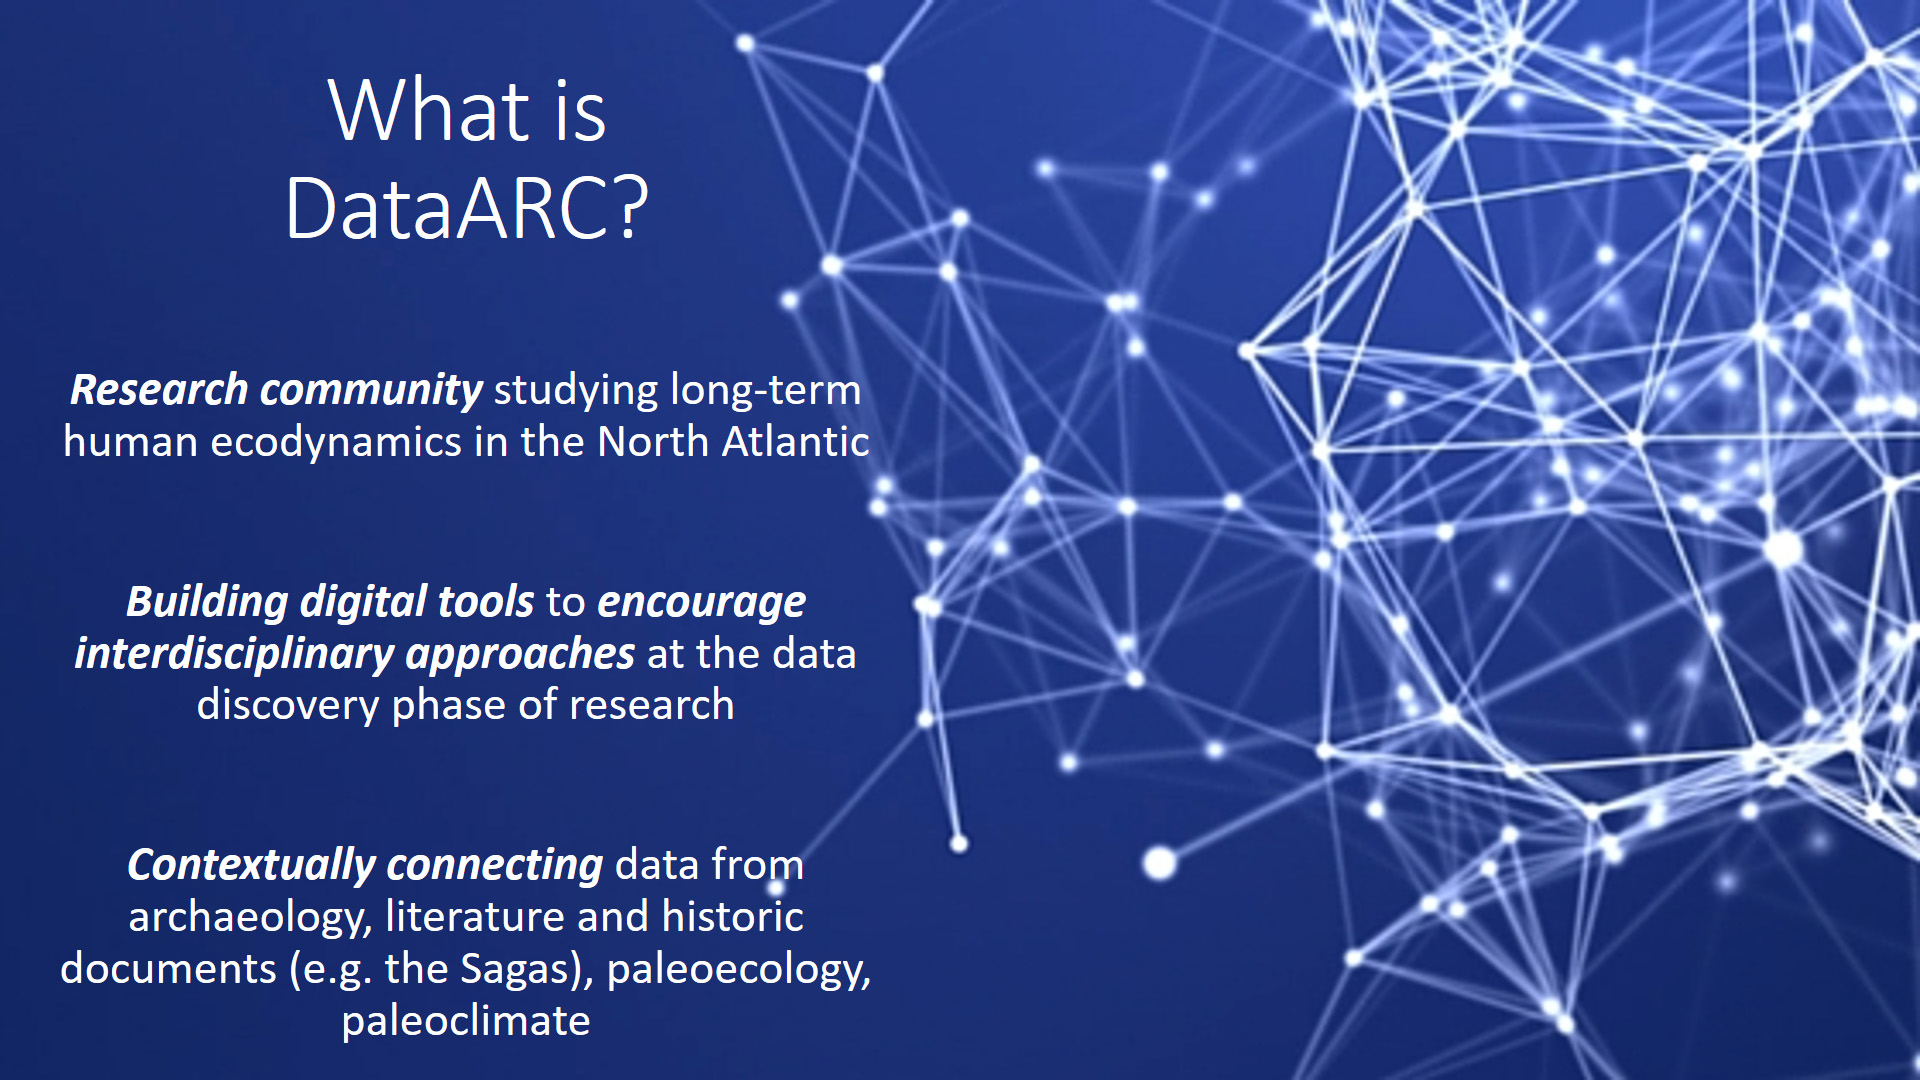 "Infographic titled ""what is dataarc?"" Lists key qualities: Research community studying long-term human ecodynamics in the North Atlantic; Building tools to encourage interdisciplinary approaches at the data discovery phase of research; Contextually connecting data from archaeology, literature and historic documents (e.g. the Sagas), paleoecology, paleoclimate"